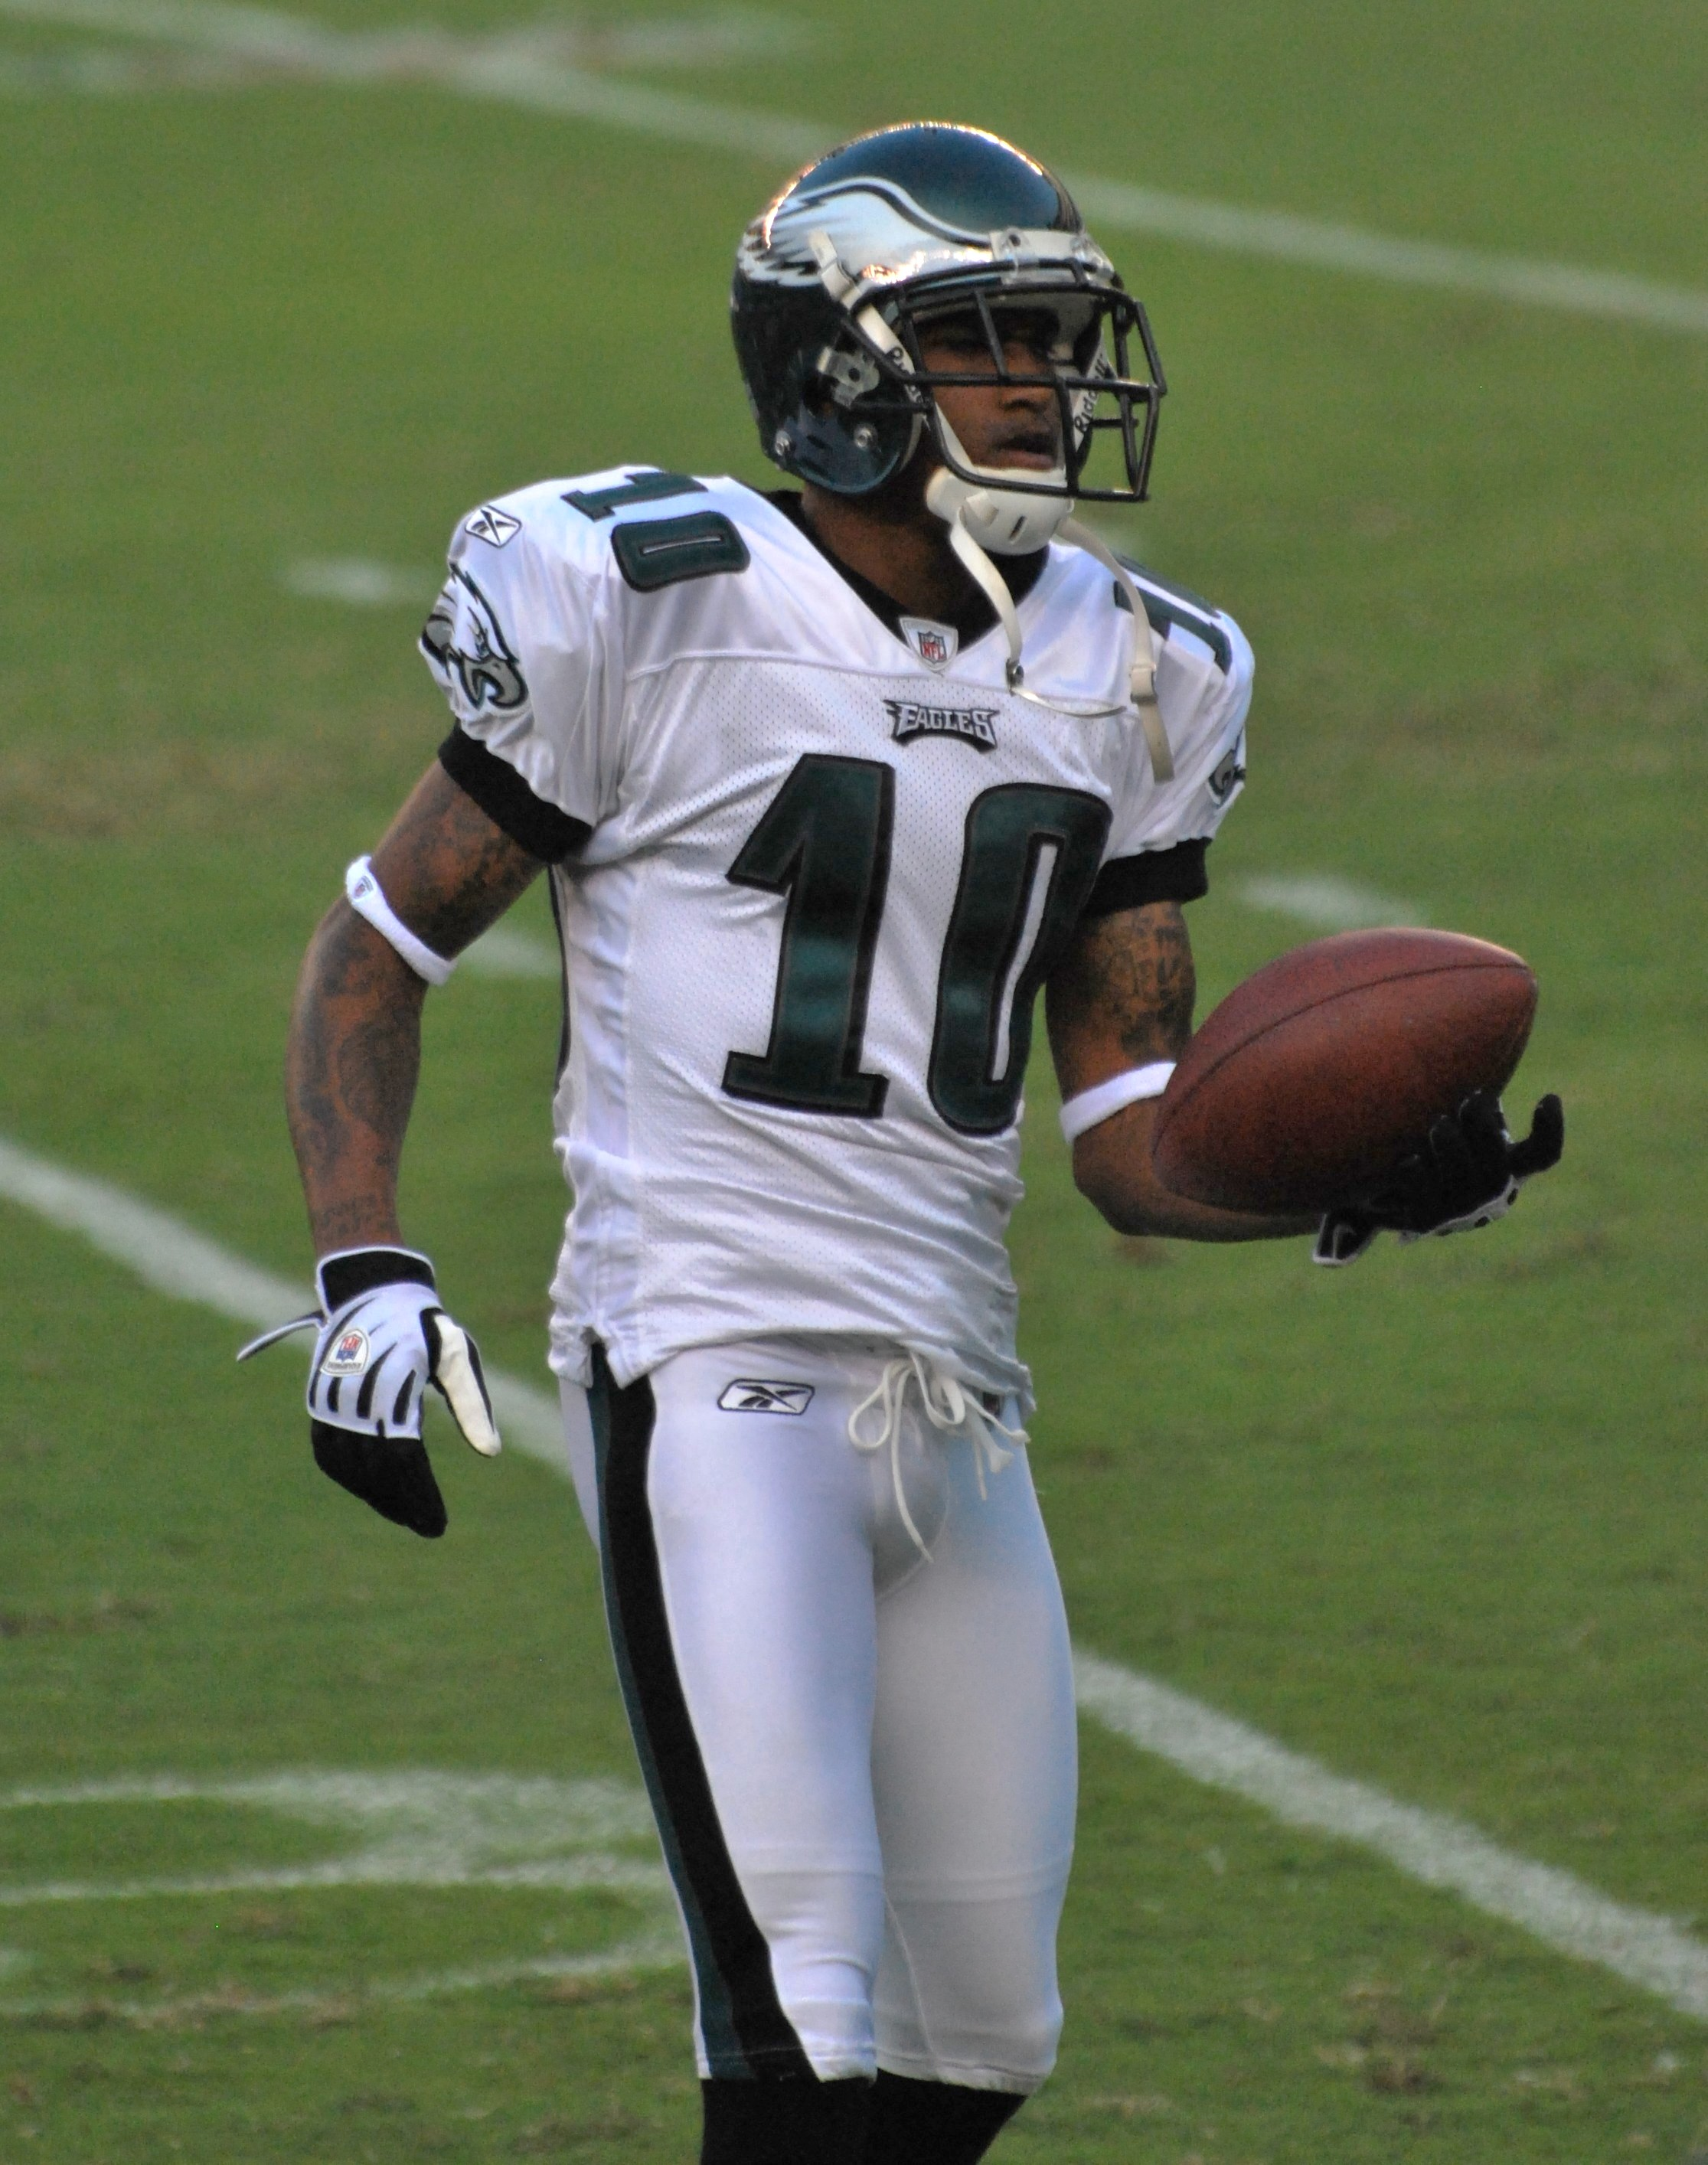 ... spain philadelphia eagles 10 desean jackson elite white jersey ded6b  4eb18 a0d8e6da5